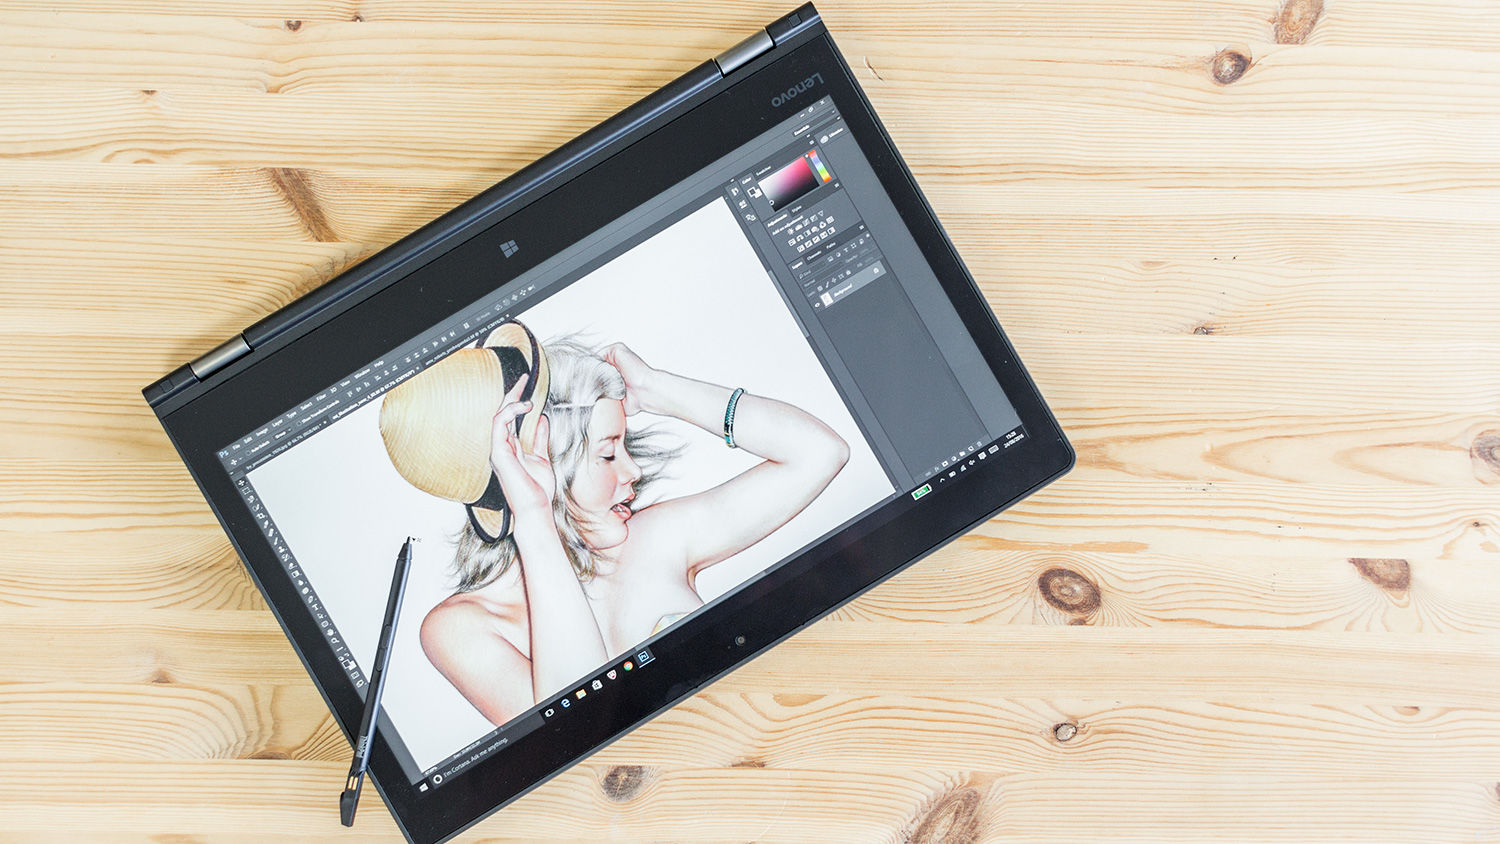 Drawing Lines With Tablet : Lenovo thinkpad p yoga review digital arts